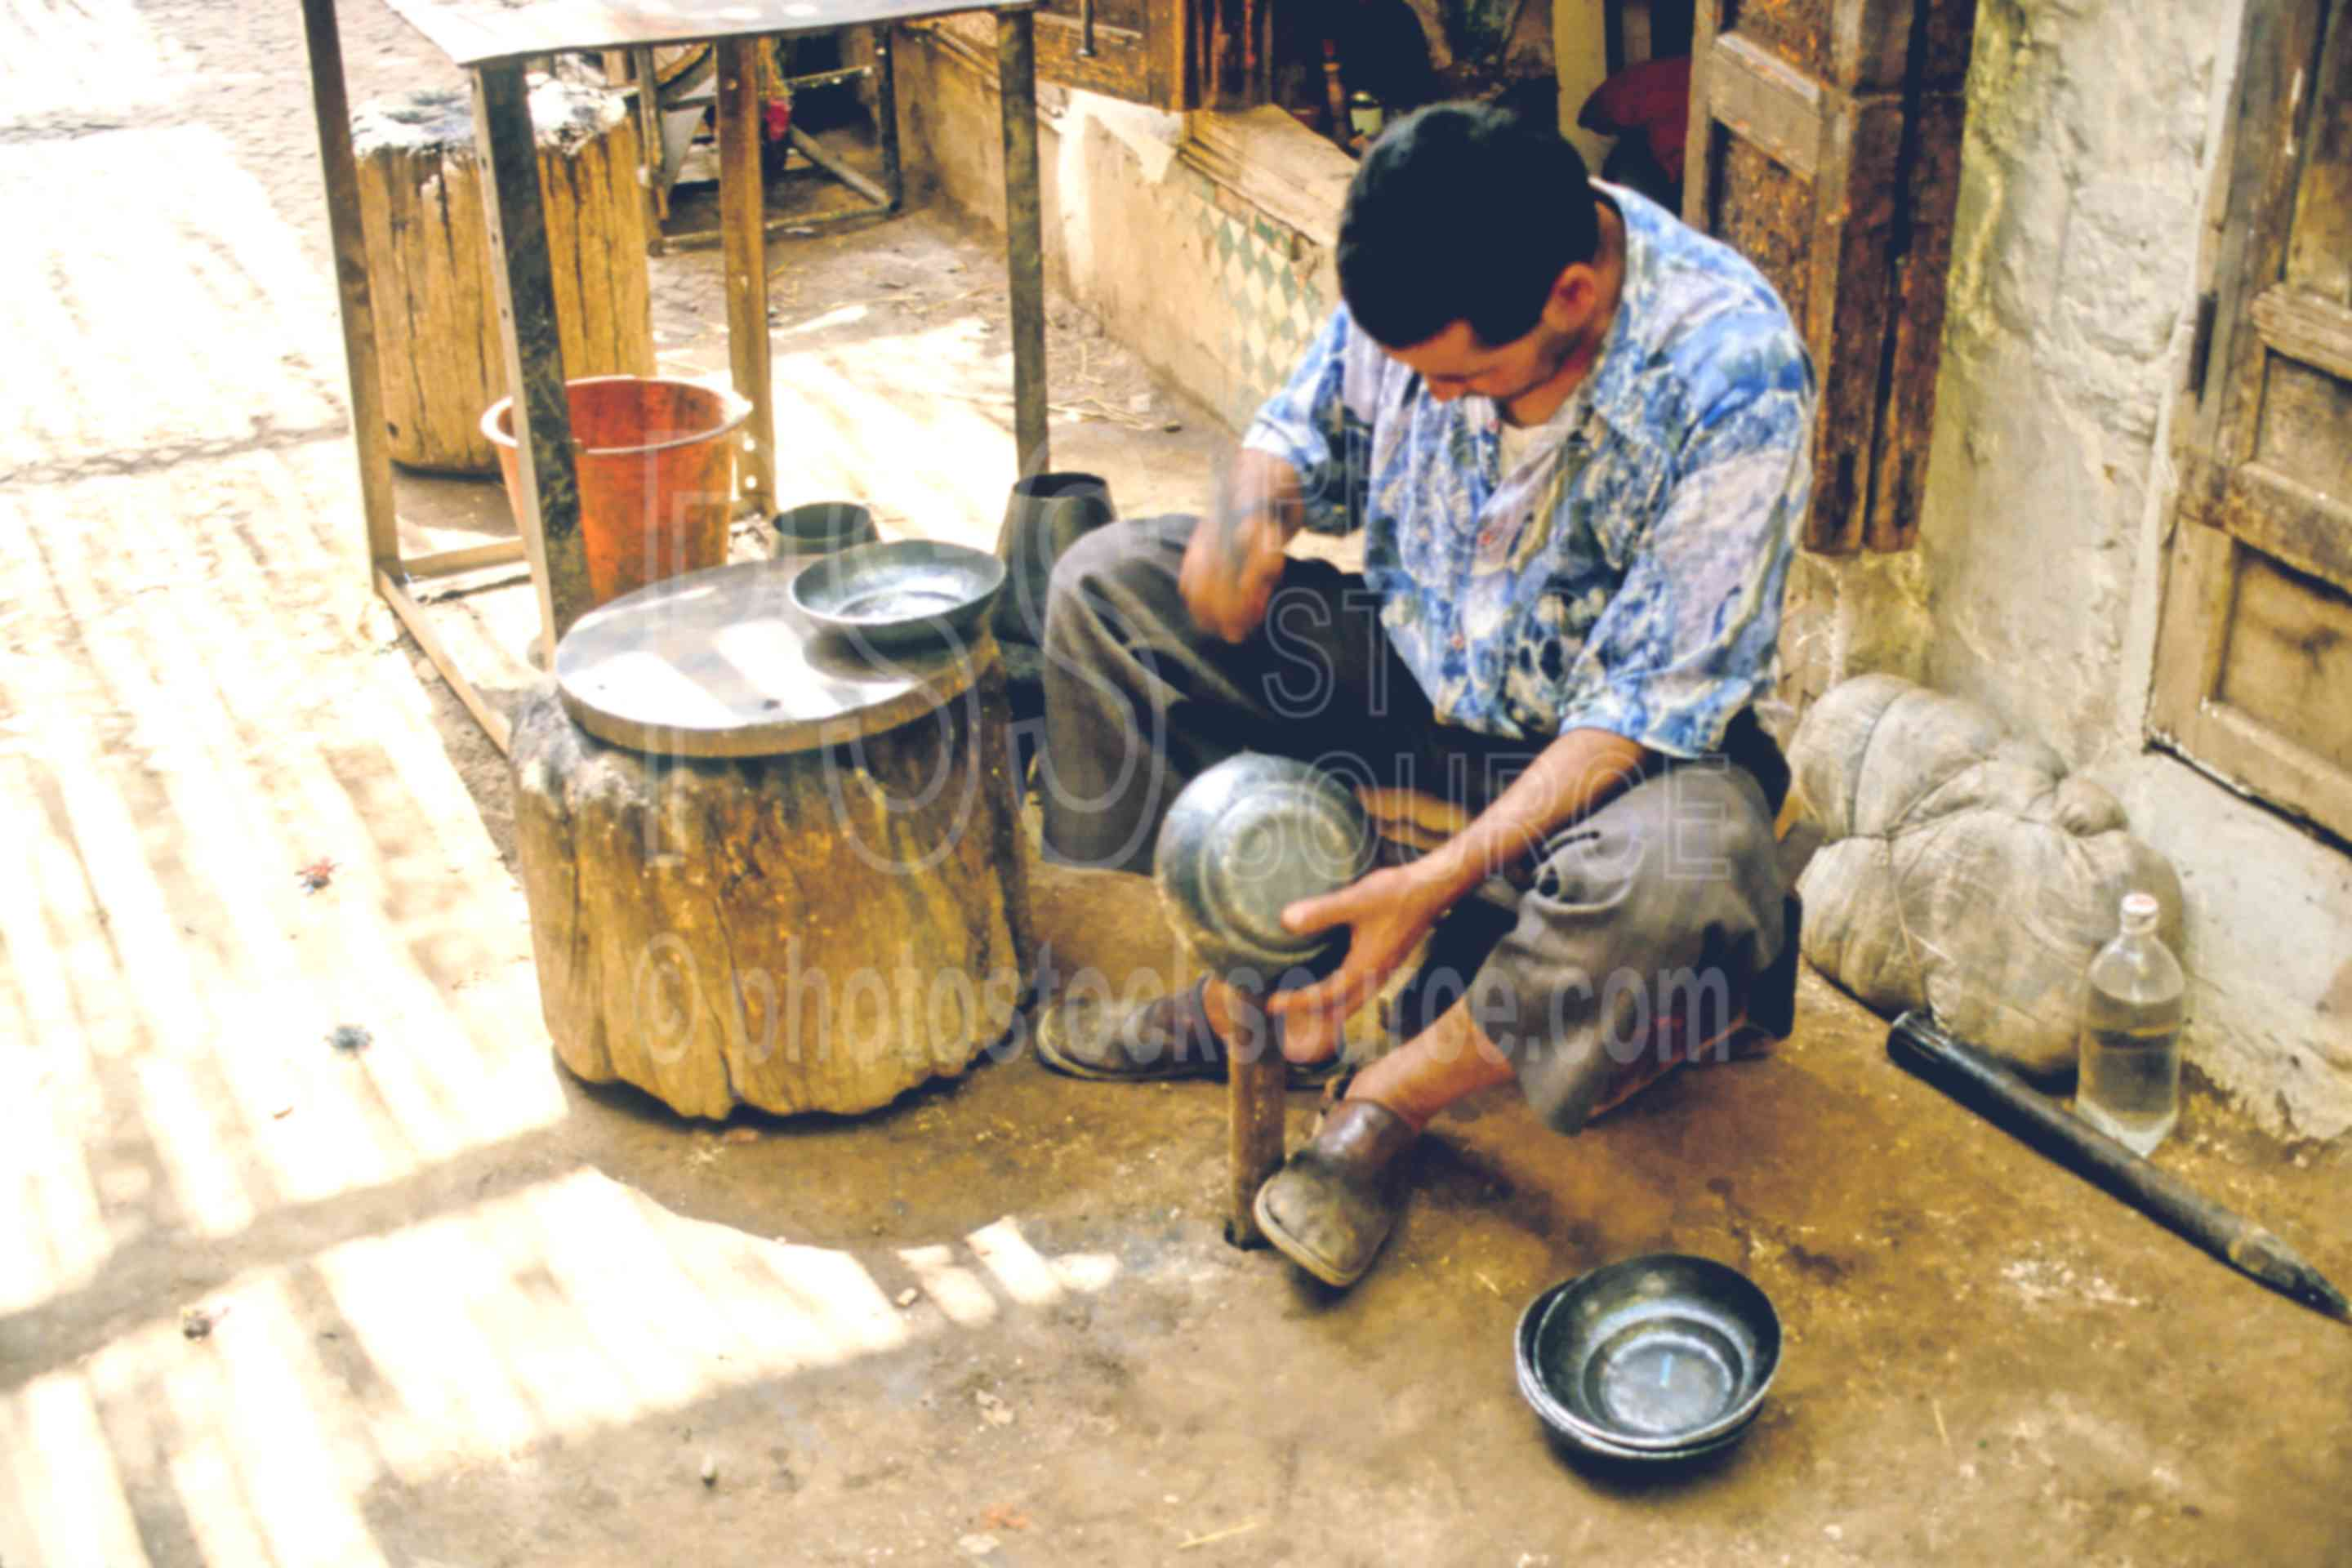 Metal Worker,mans,metal,smith,work,worker,tools instruments,morocco markets,cargo